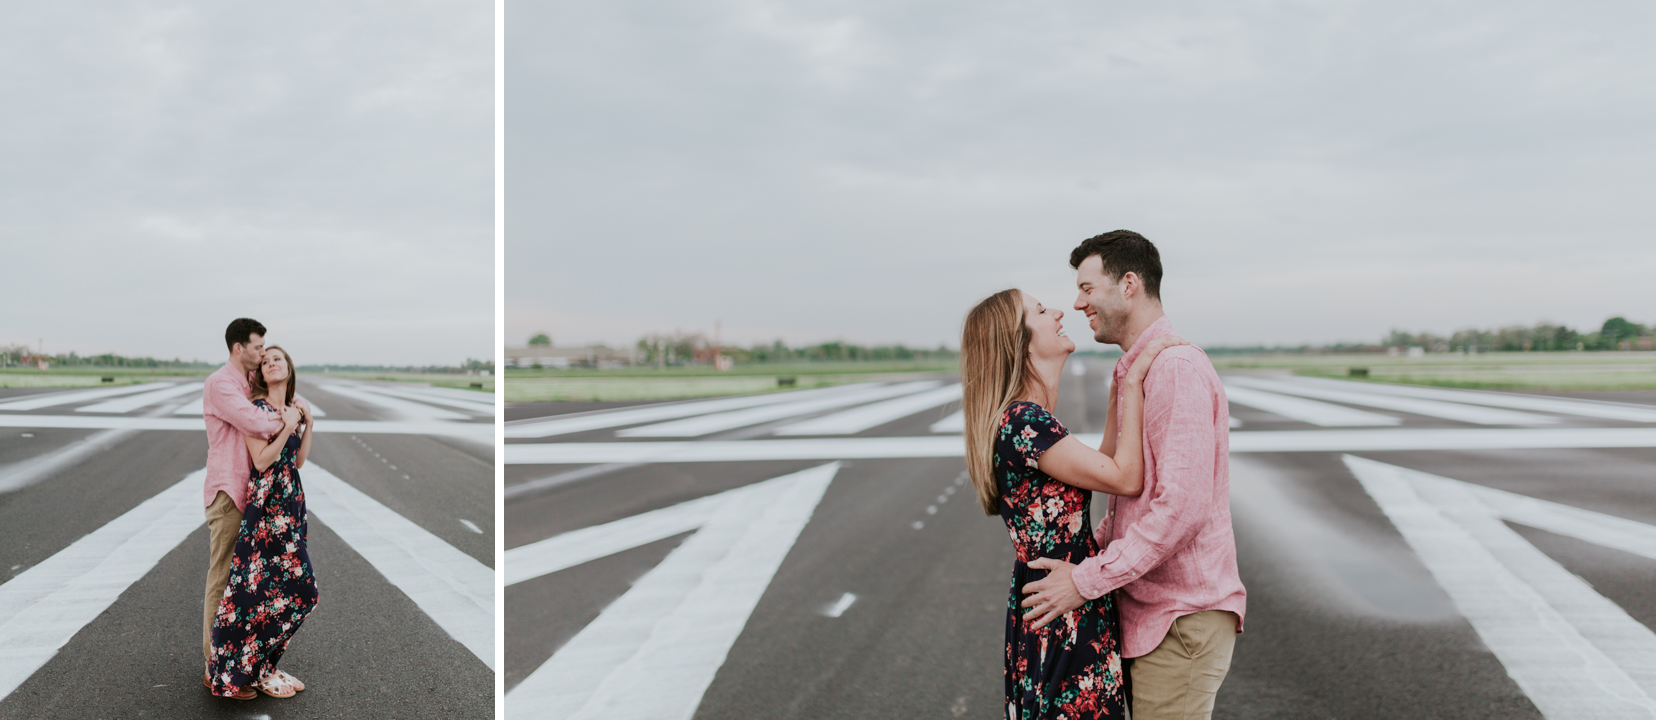 LGP-Detroit-Airport-Hanger-Engagement-Session-13.jpg